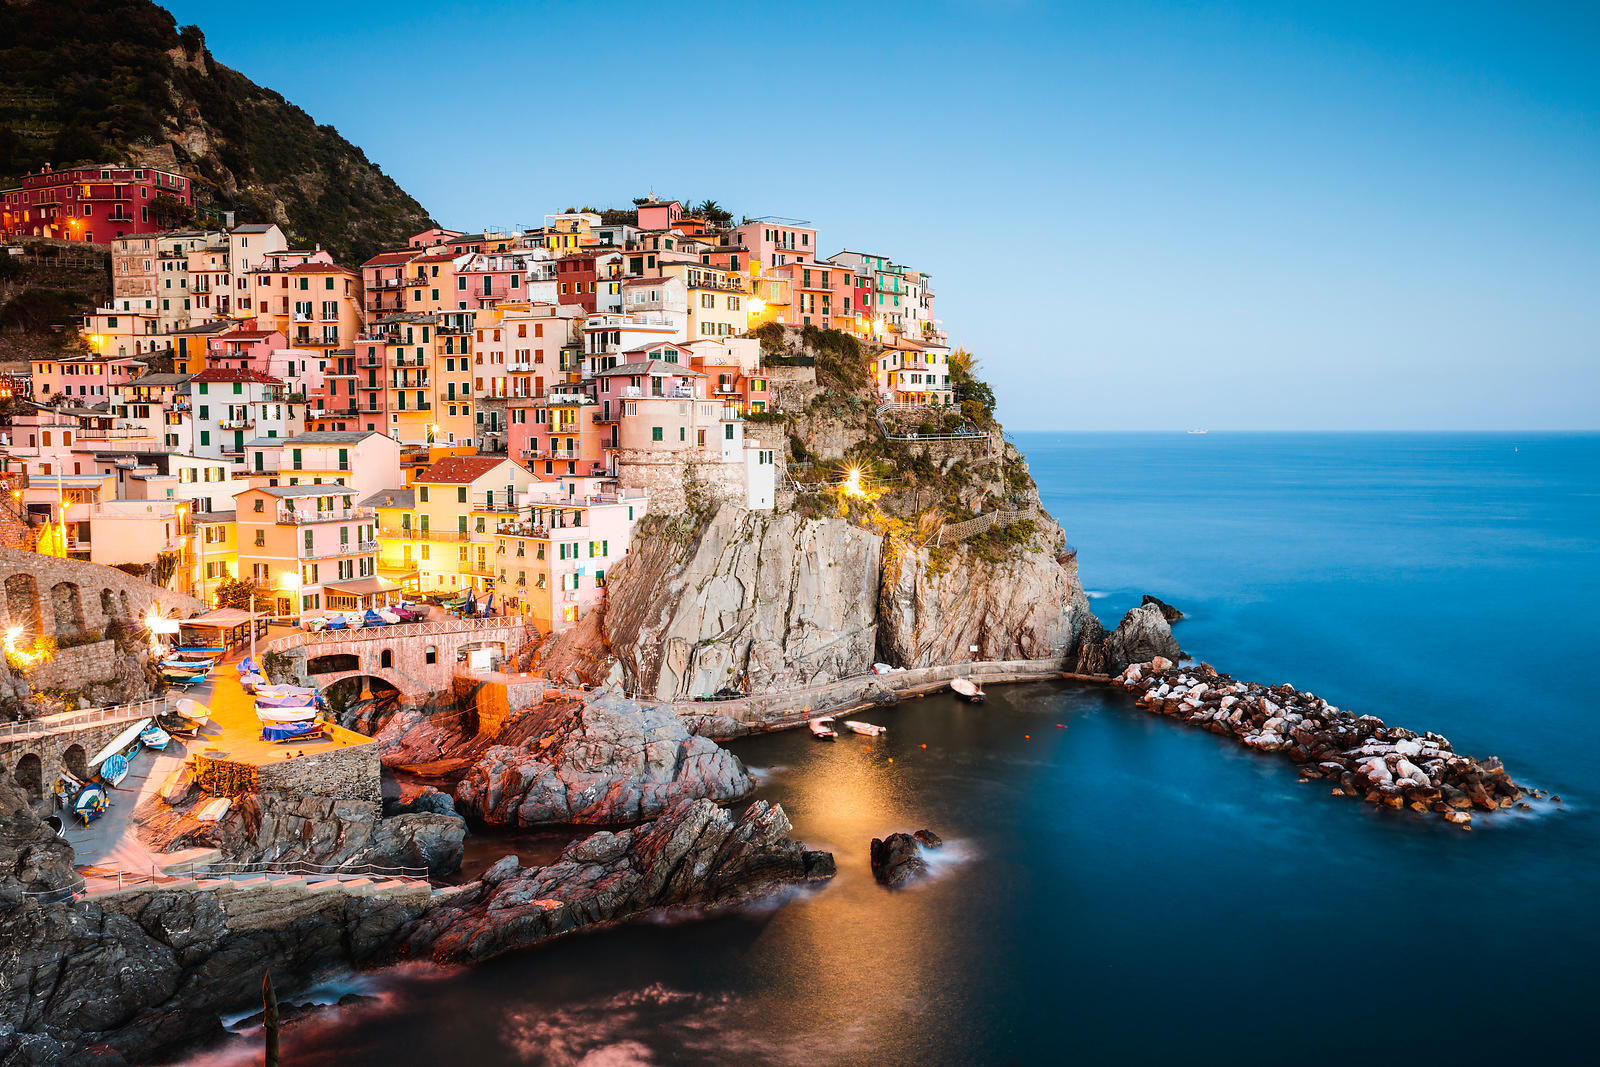 Blue hour in Manarola